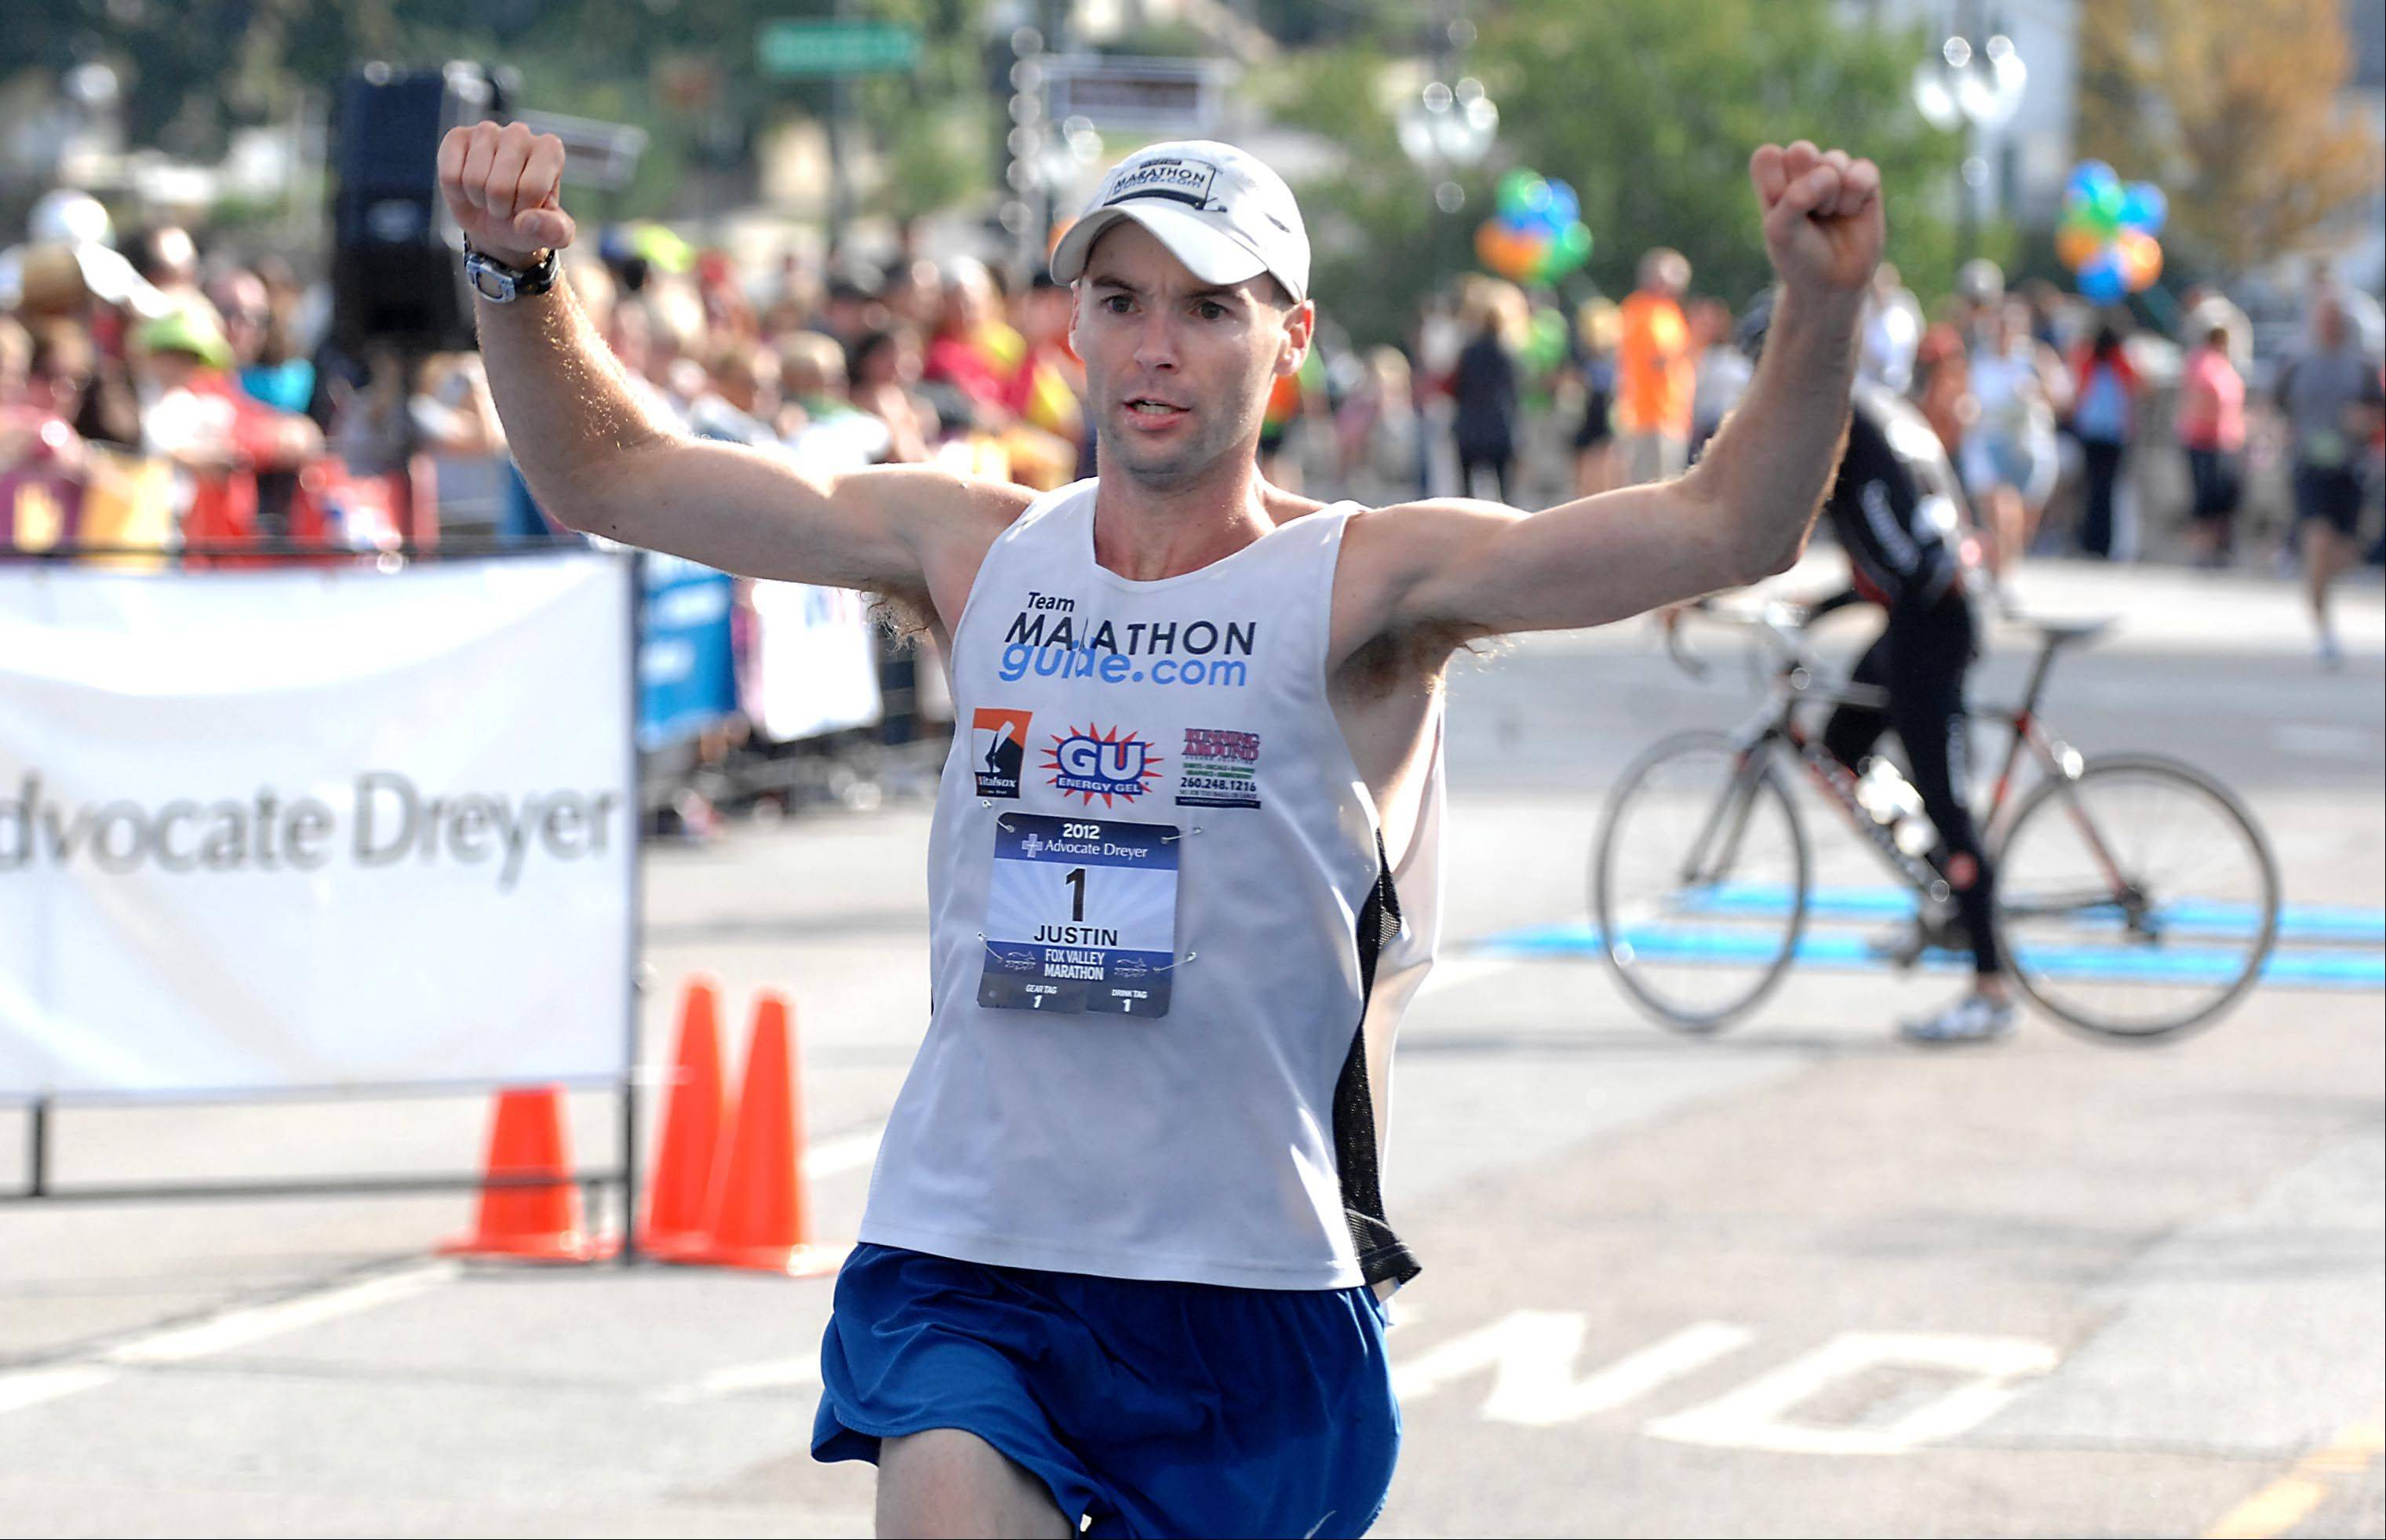 With a record-setting time, Justin Gillette of Goshen, Ind., finishes the Fox Valley Marathon in first place Sunday in St. Charles. The first 30 finishers qualified for the prestigious Boston Marathon.